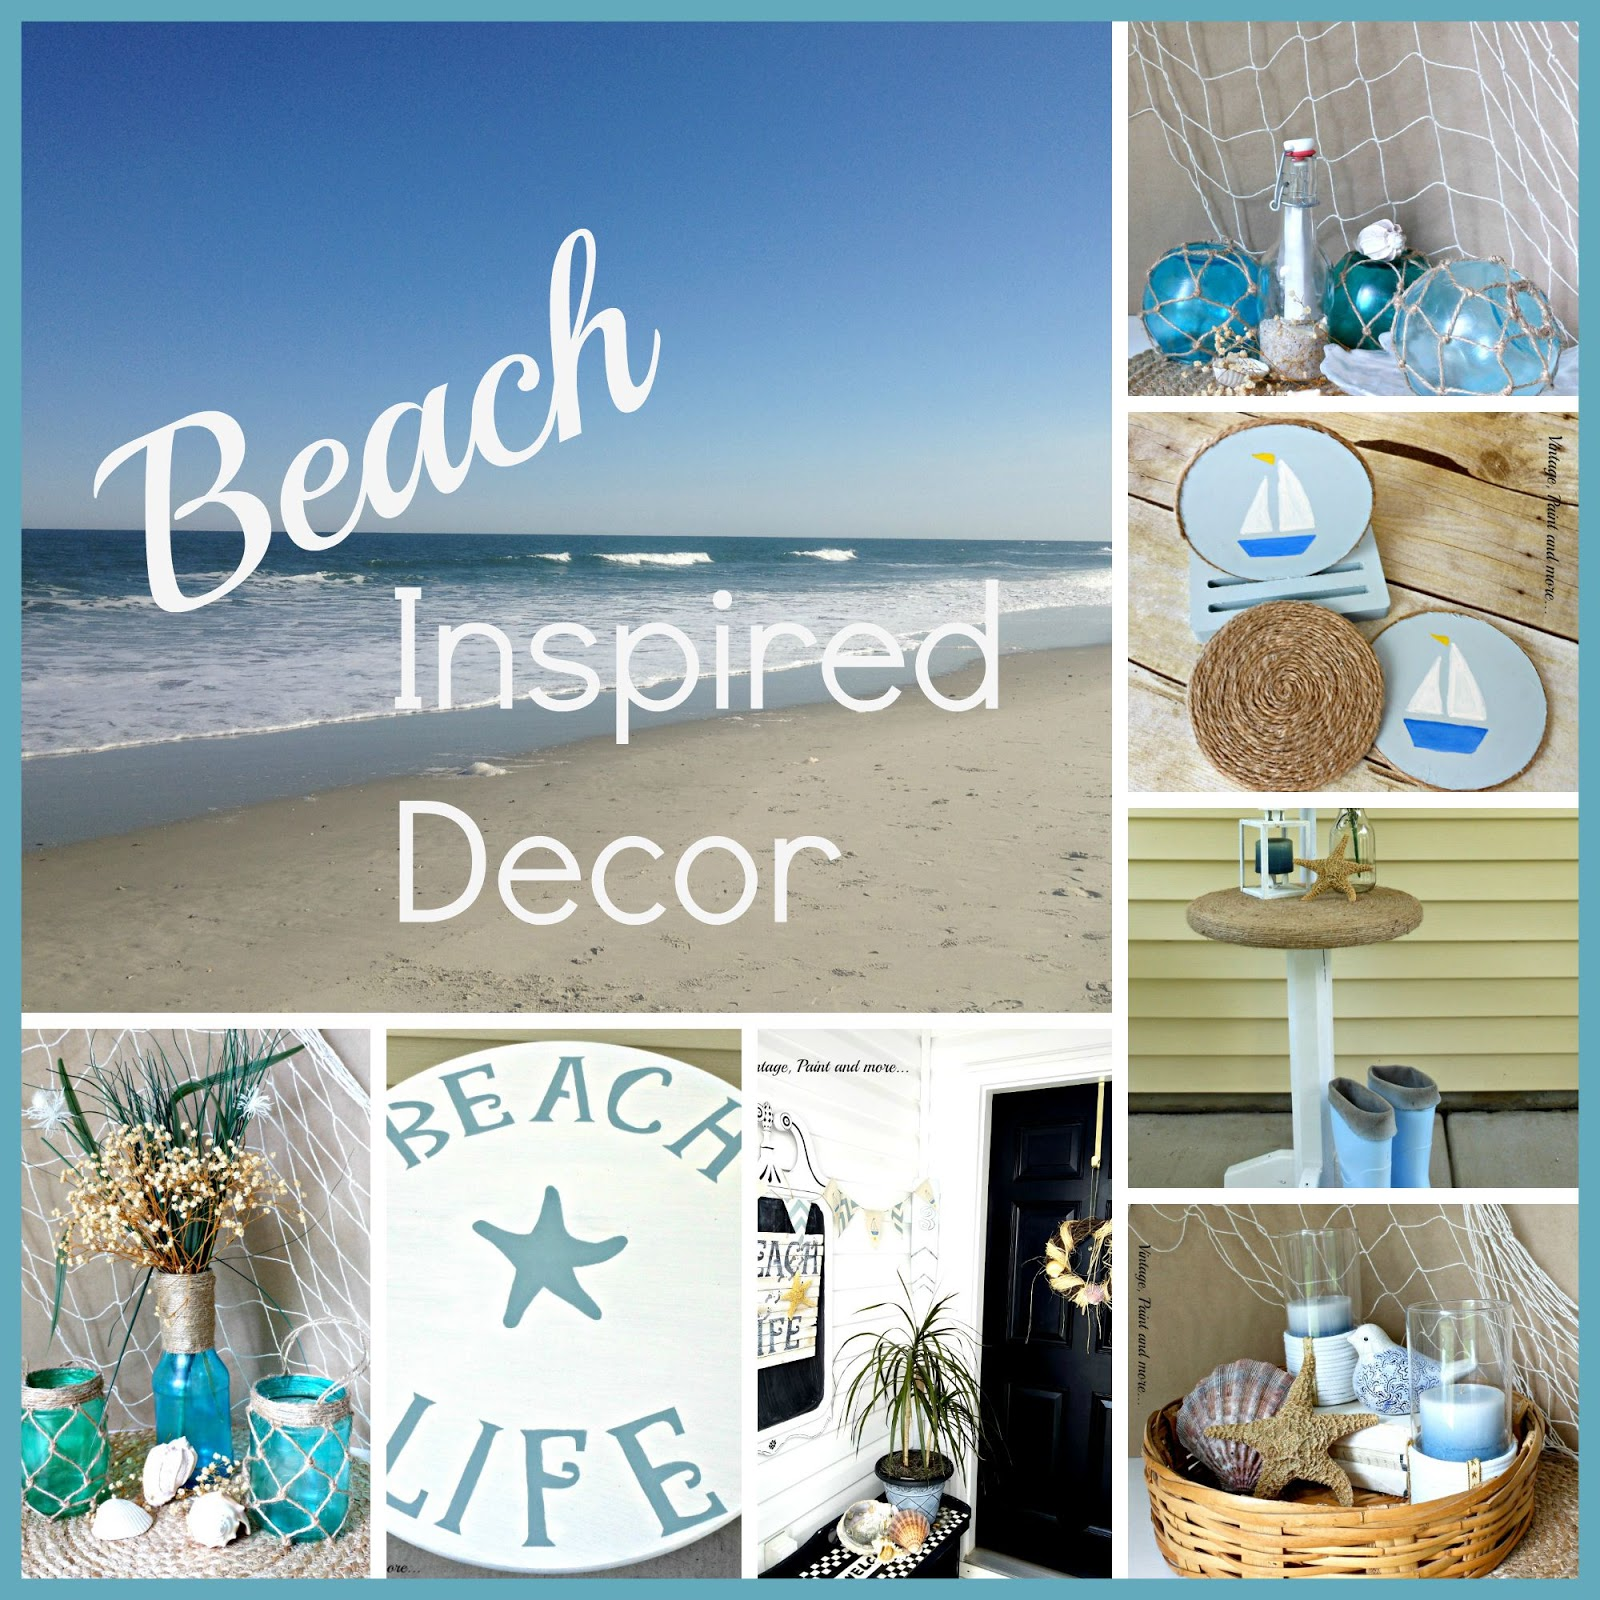 23 Beach Coastal Decor Ideas Inspired Home Decor: Vintage, Paint And More